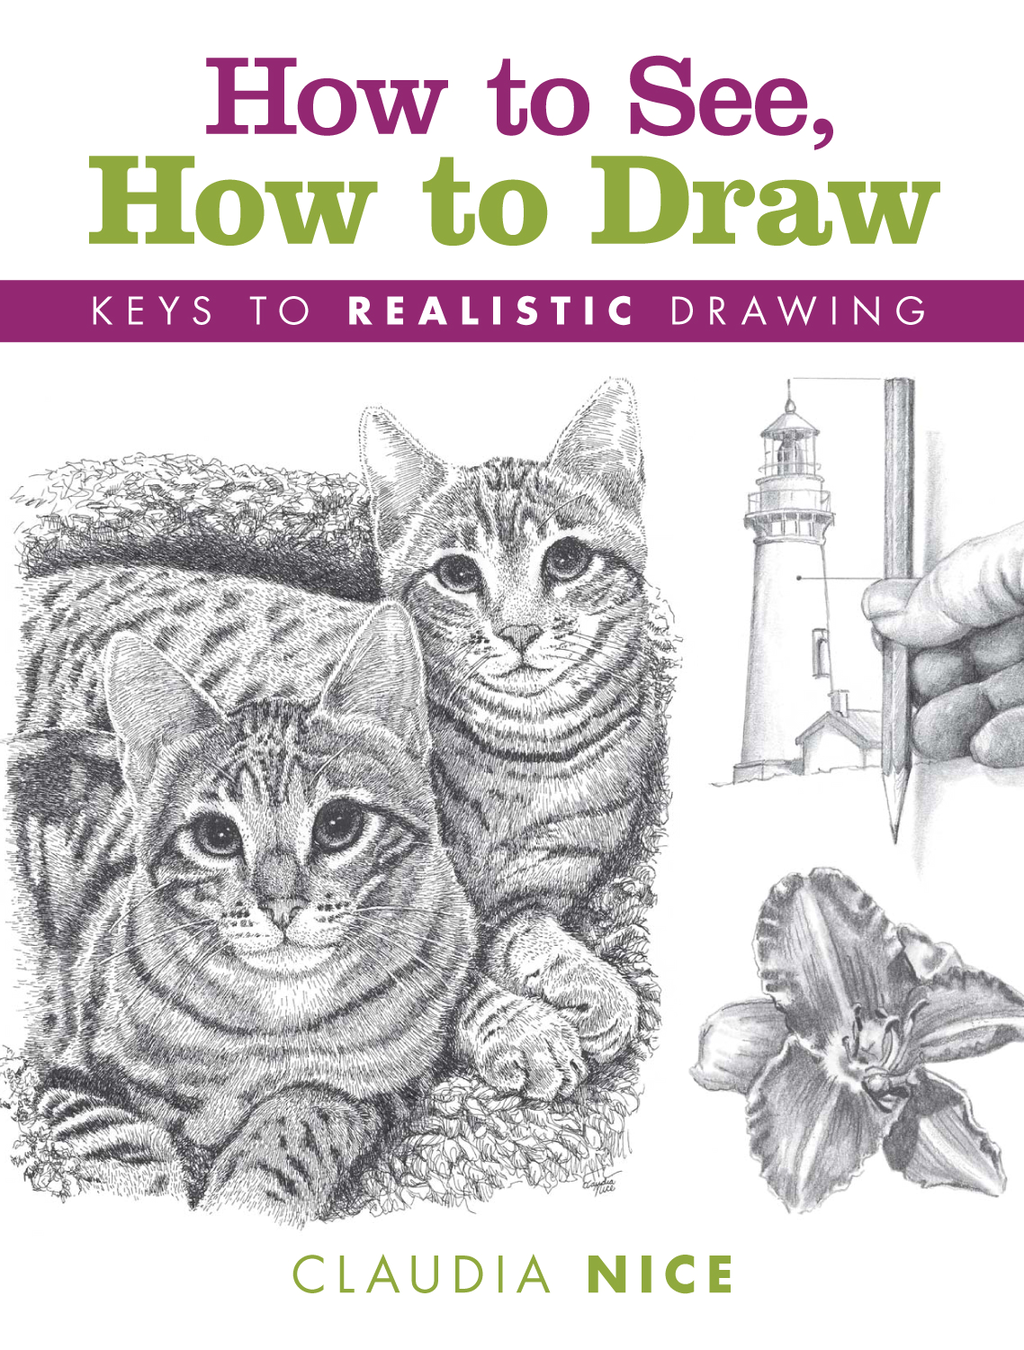 How to See, How to Draw Keys to Realistic Drawing